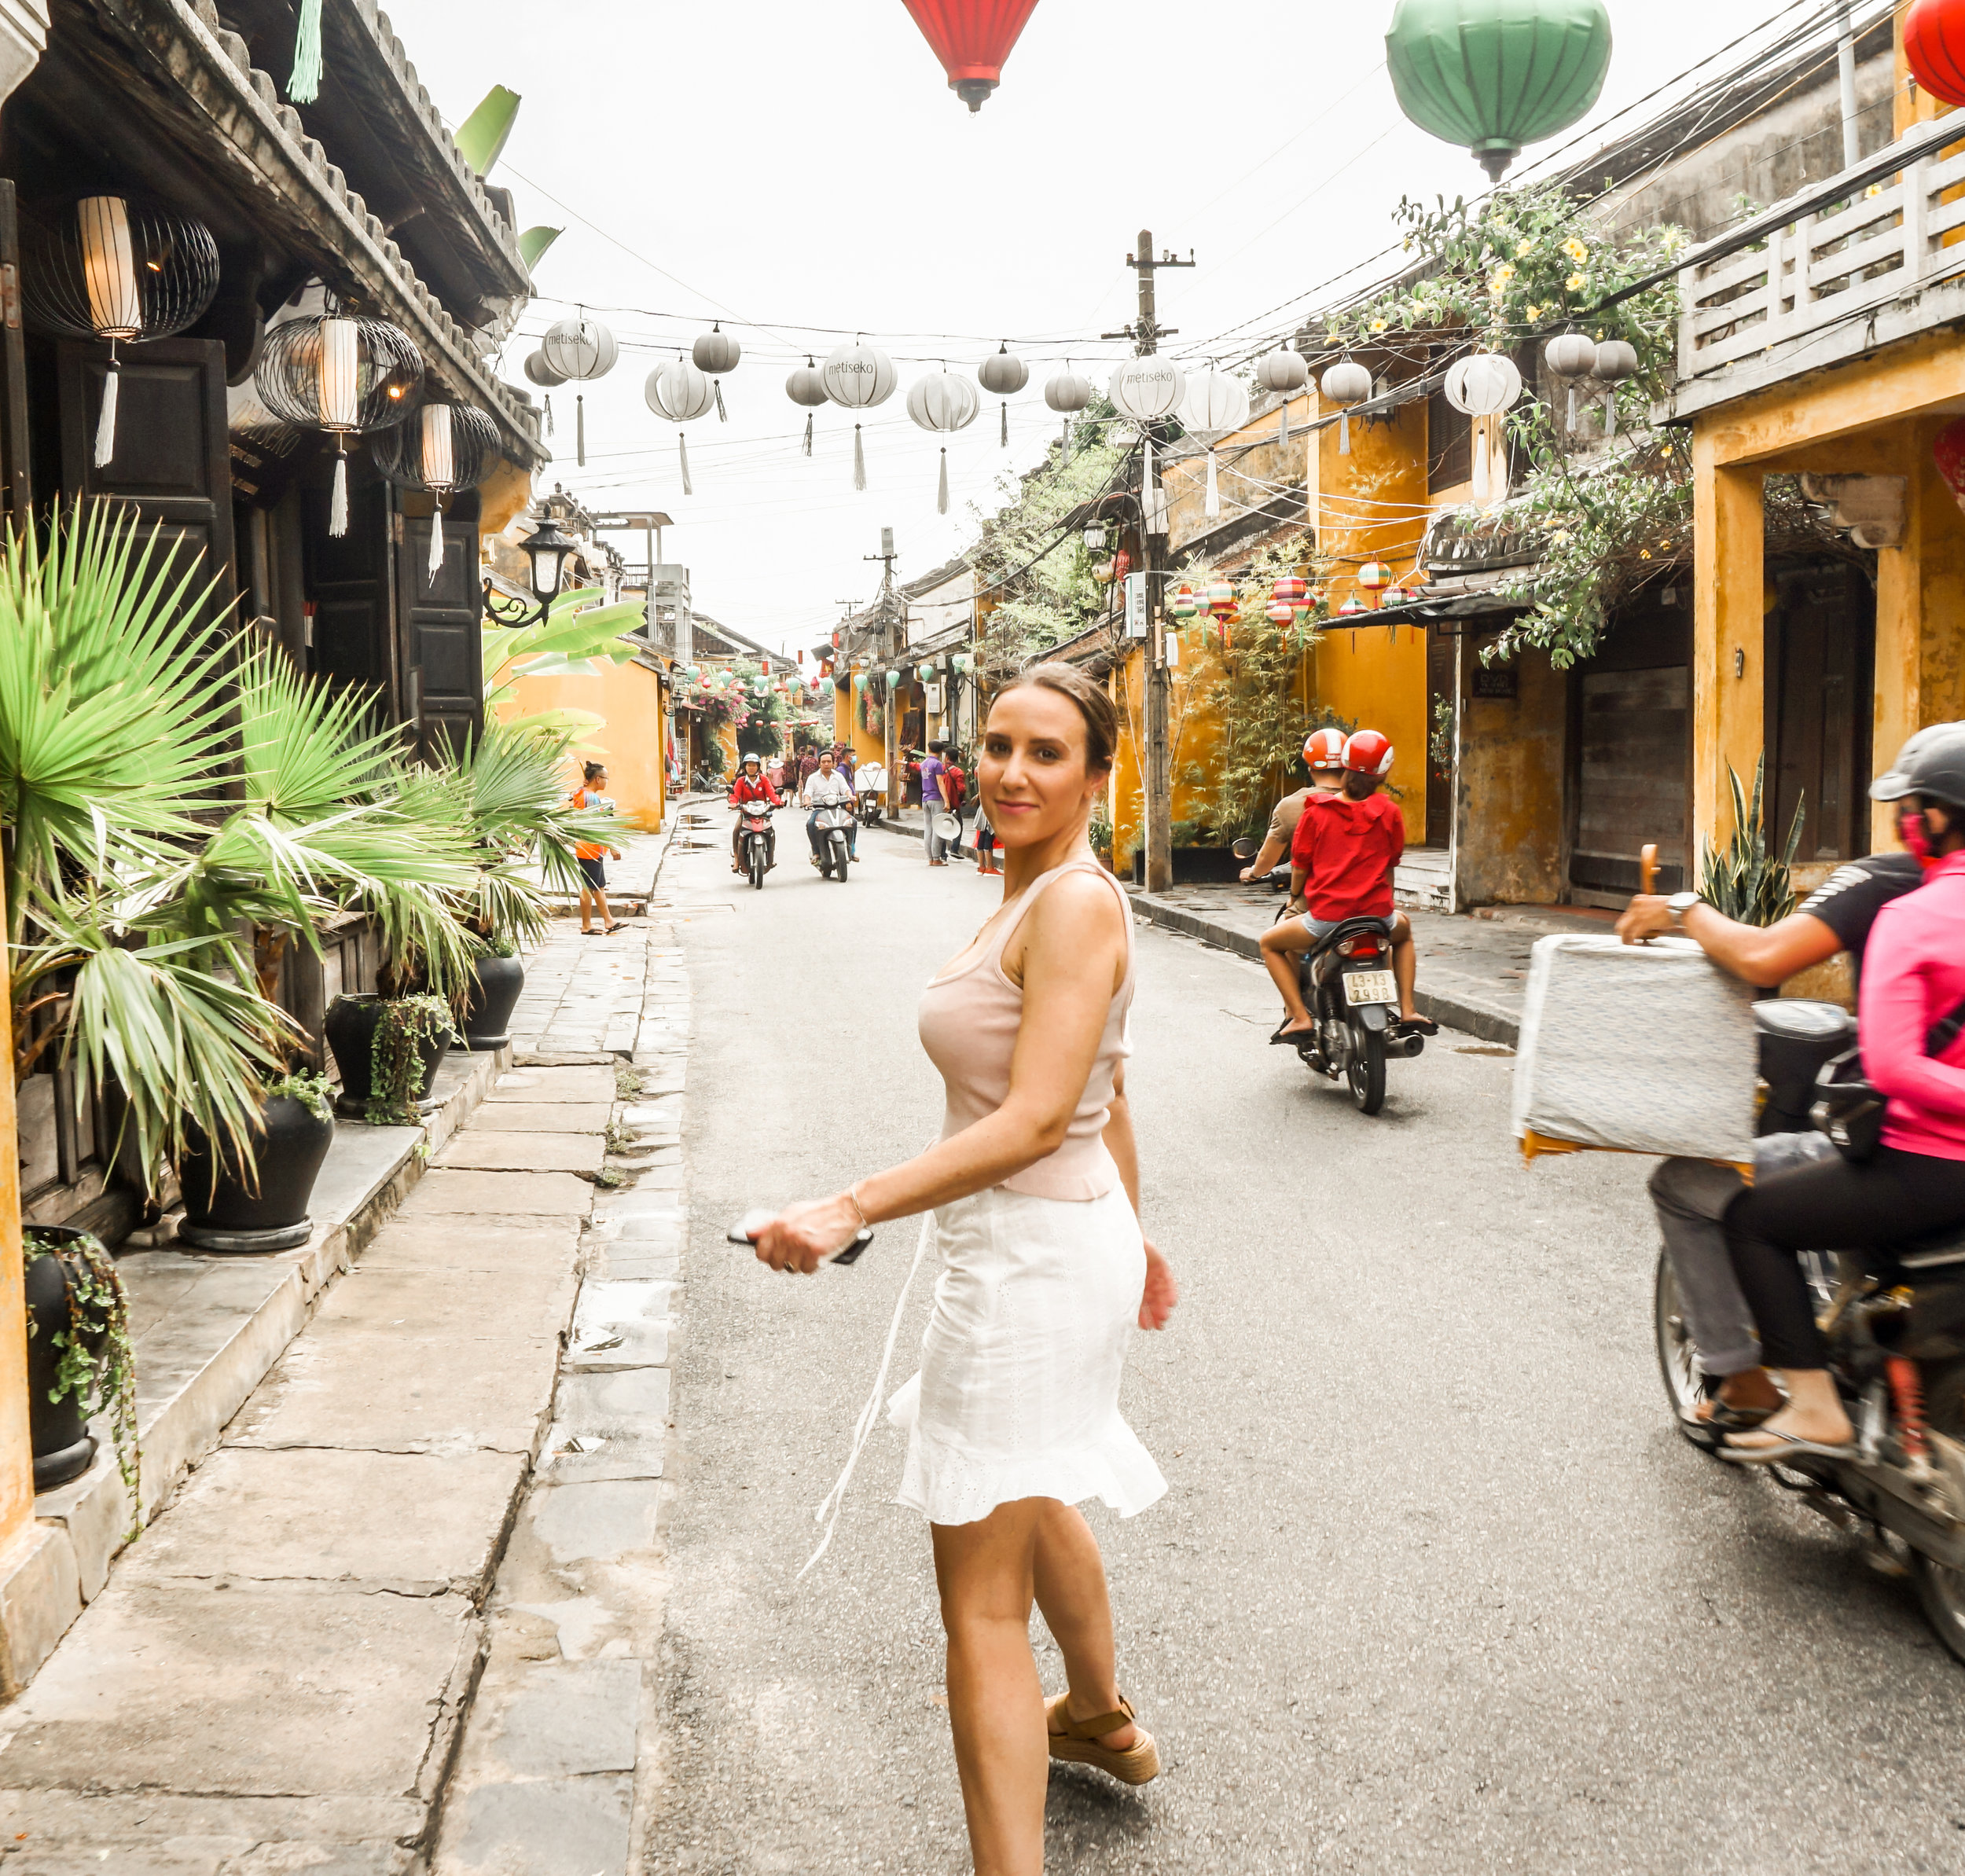 hoi-an-ancient-town-vietnam-2019.jpg